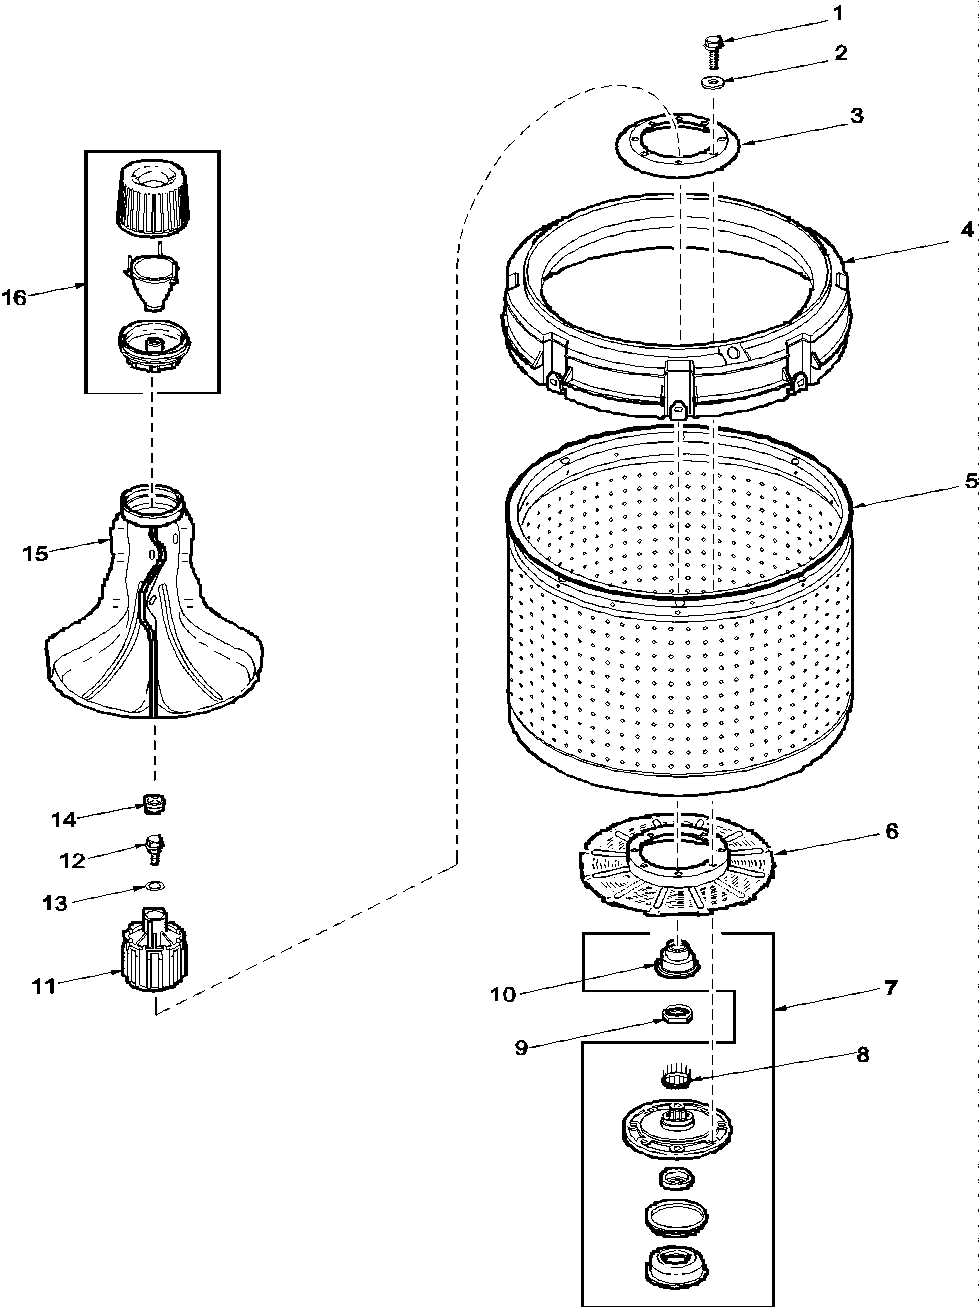 Amana Washer-Top Loading Miscellaeous information Parts